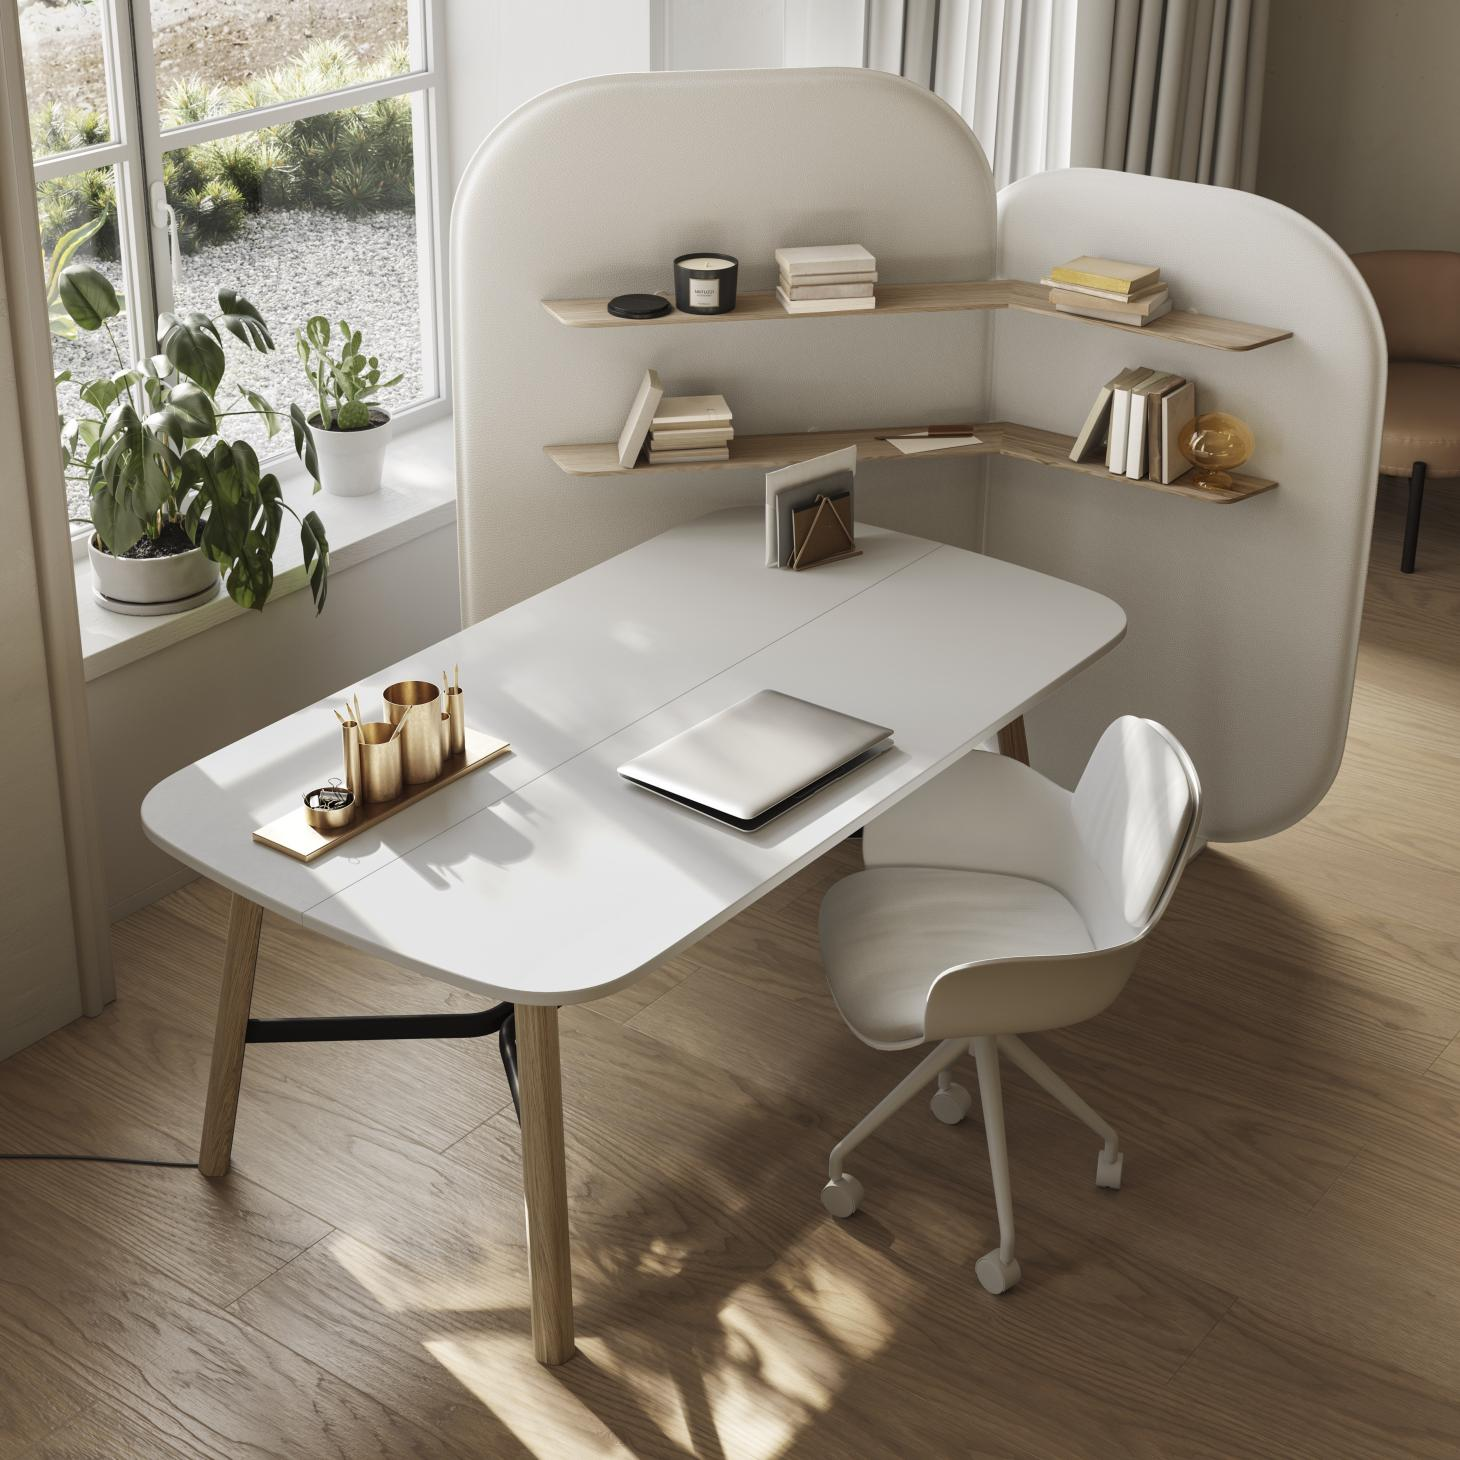 White desk with shelving and partition on one side